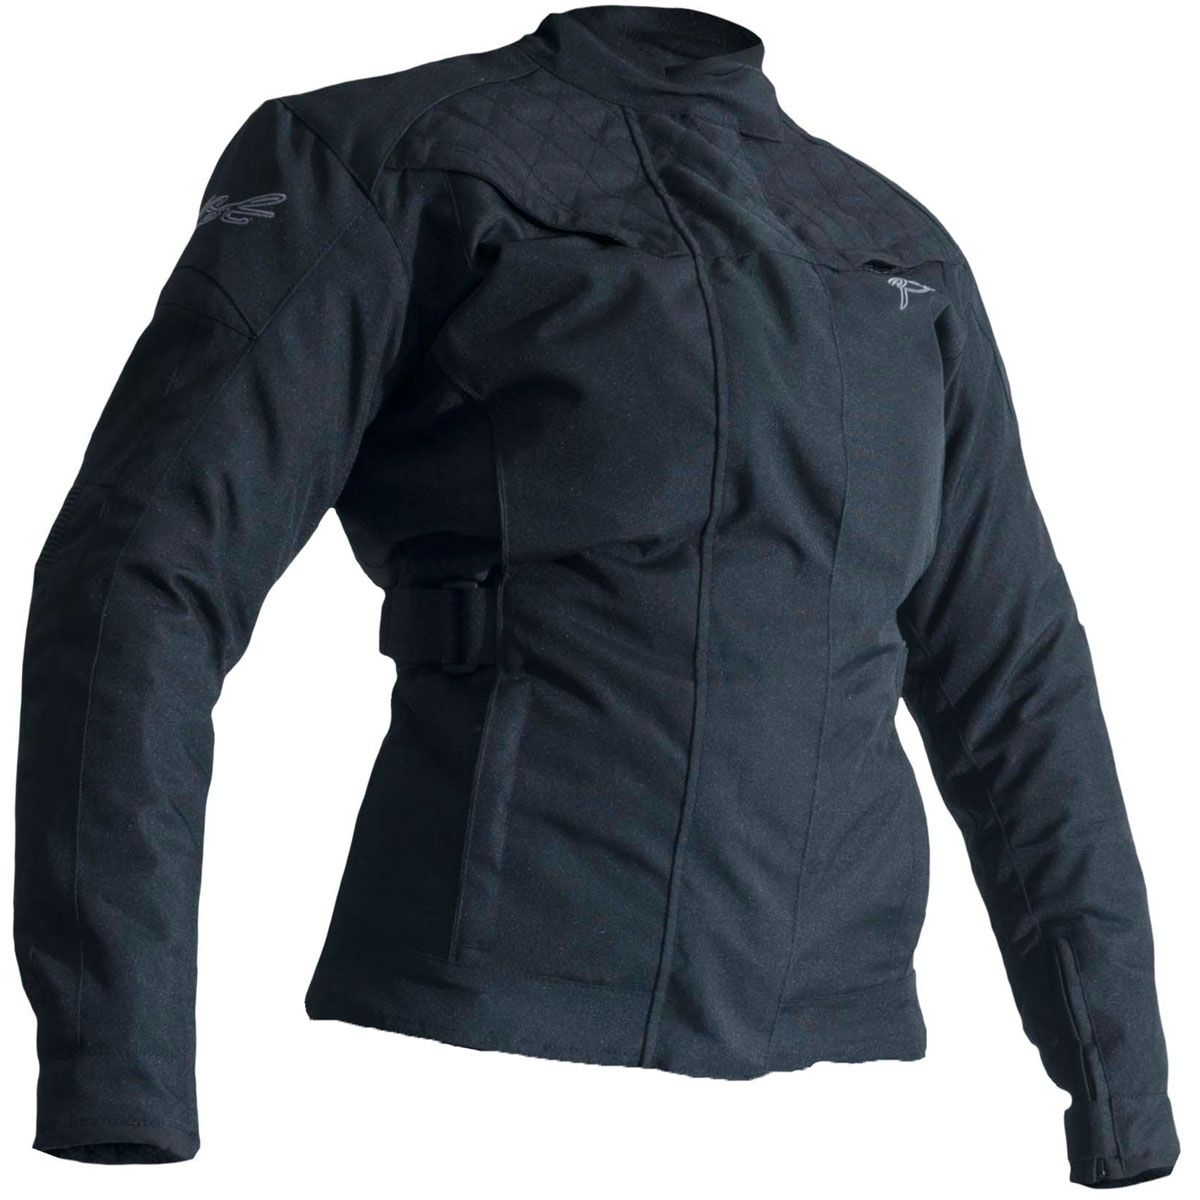 RST Gemma II CE Ladies Textile Jacket Black